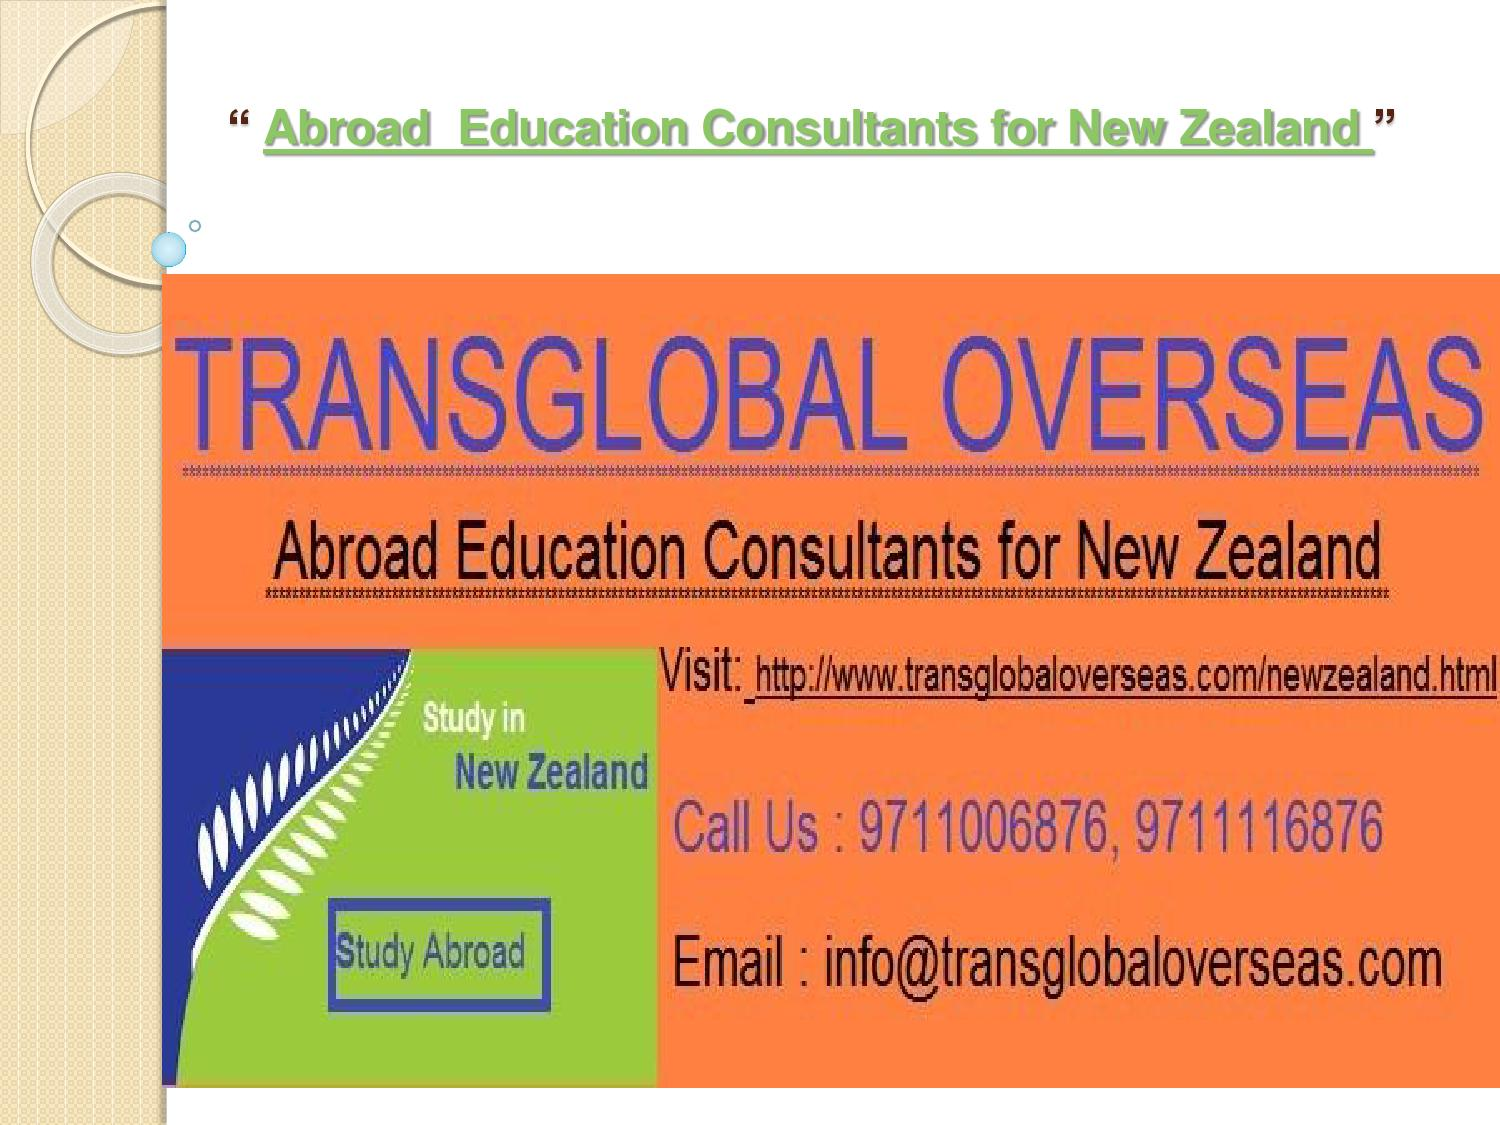 Collaborative Teaching New Zealand ~ Abroad education consultants for new zealand by kush issuu